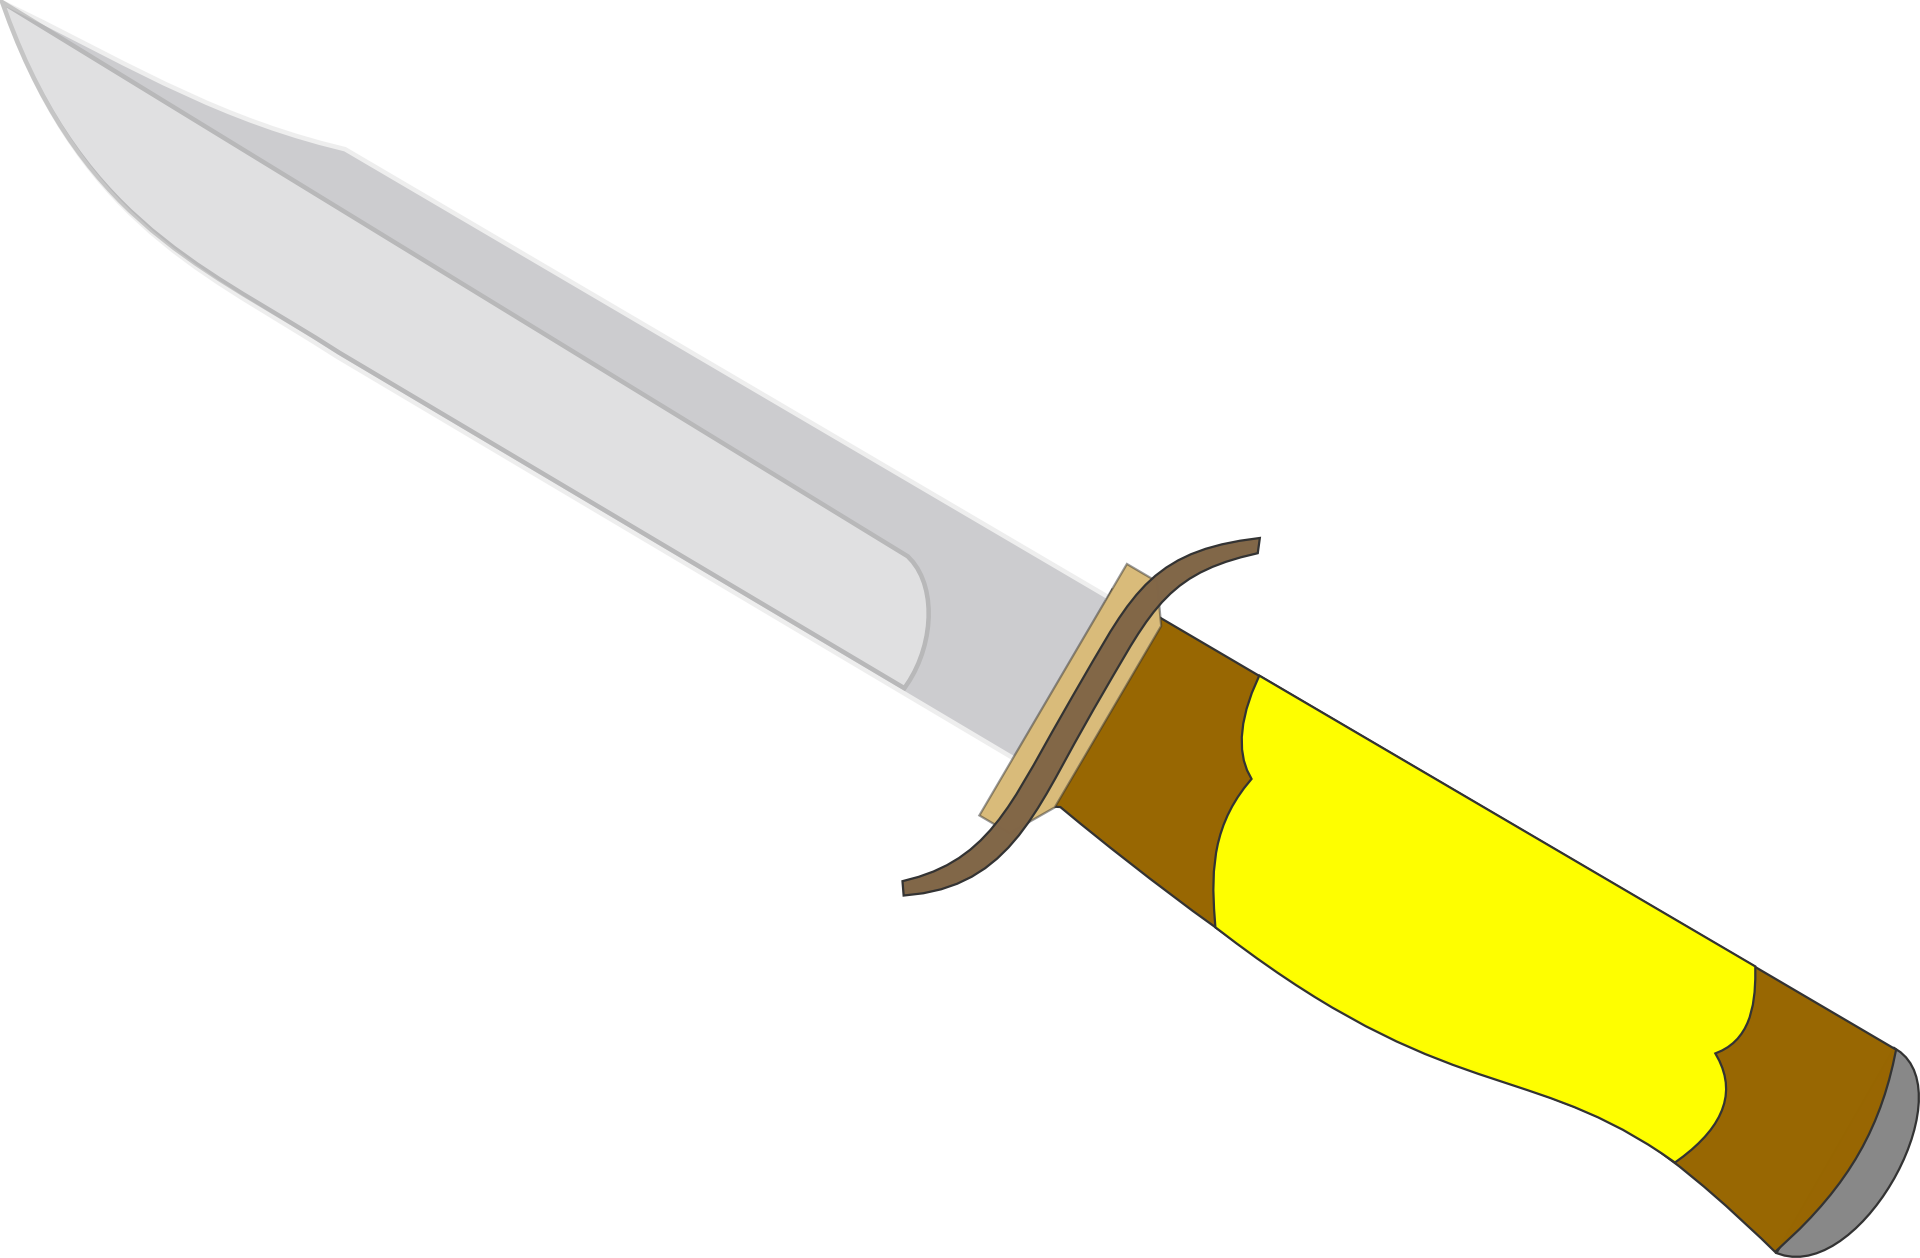 Knife clipart blunt knife.  collection of sharp